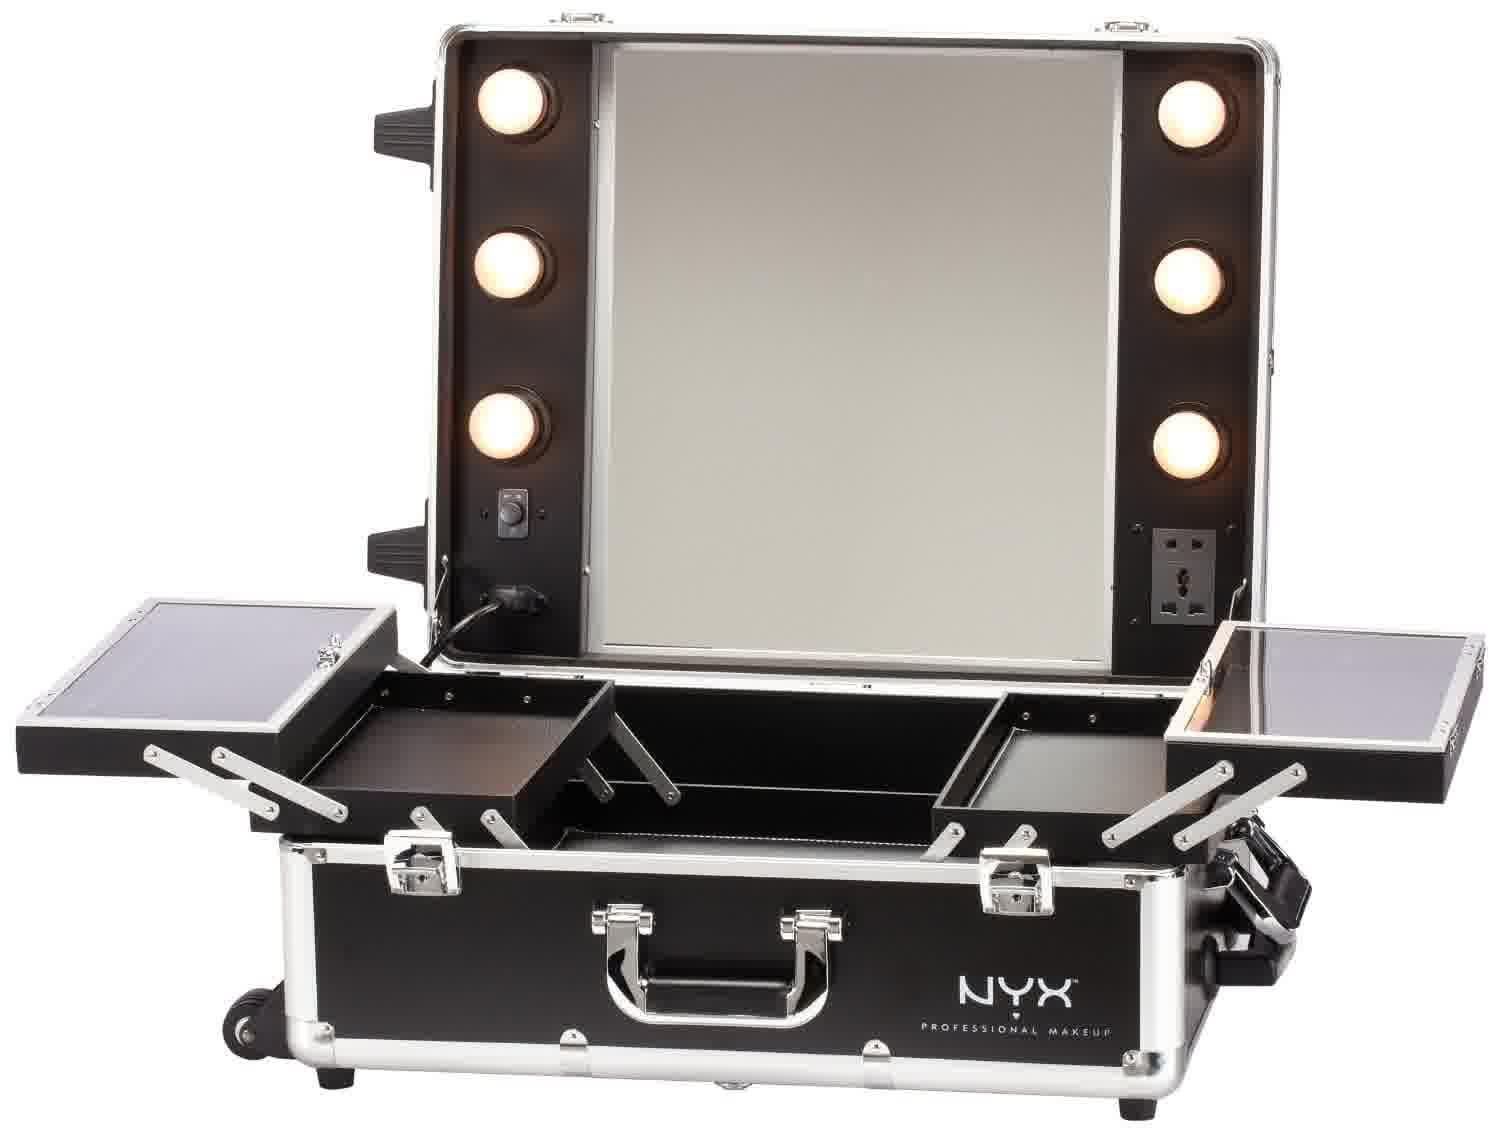 How To Build A Portable Makeup Vanity With Lights Makeup Storage Mirror Makeup Mirror With Lights Black Makeup Vanity With Lights